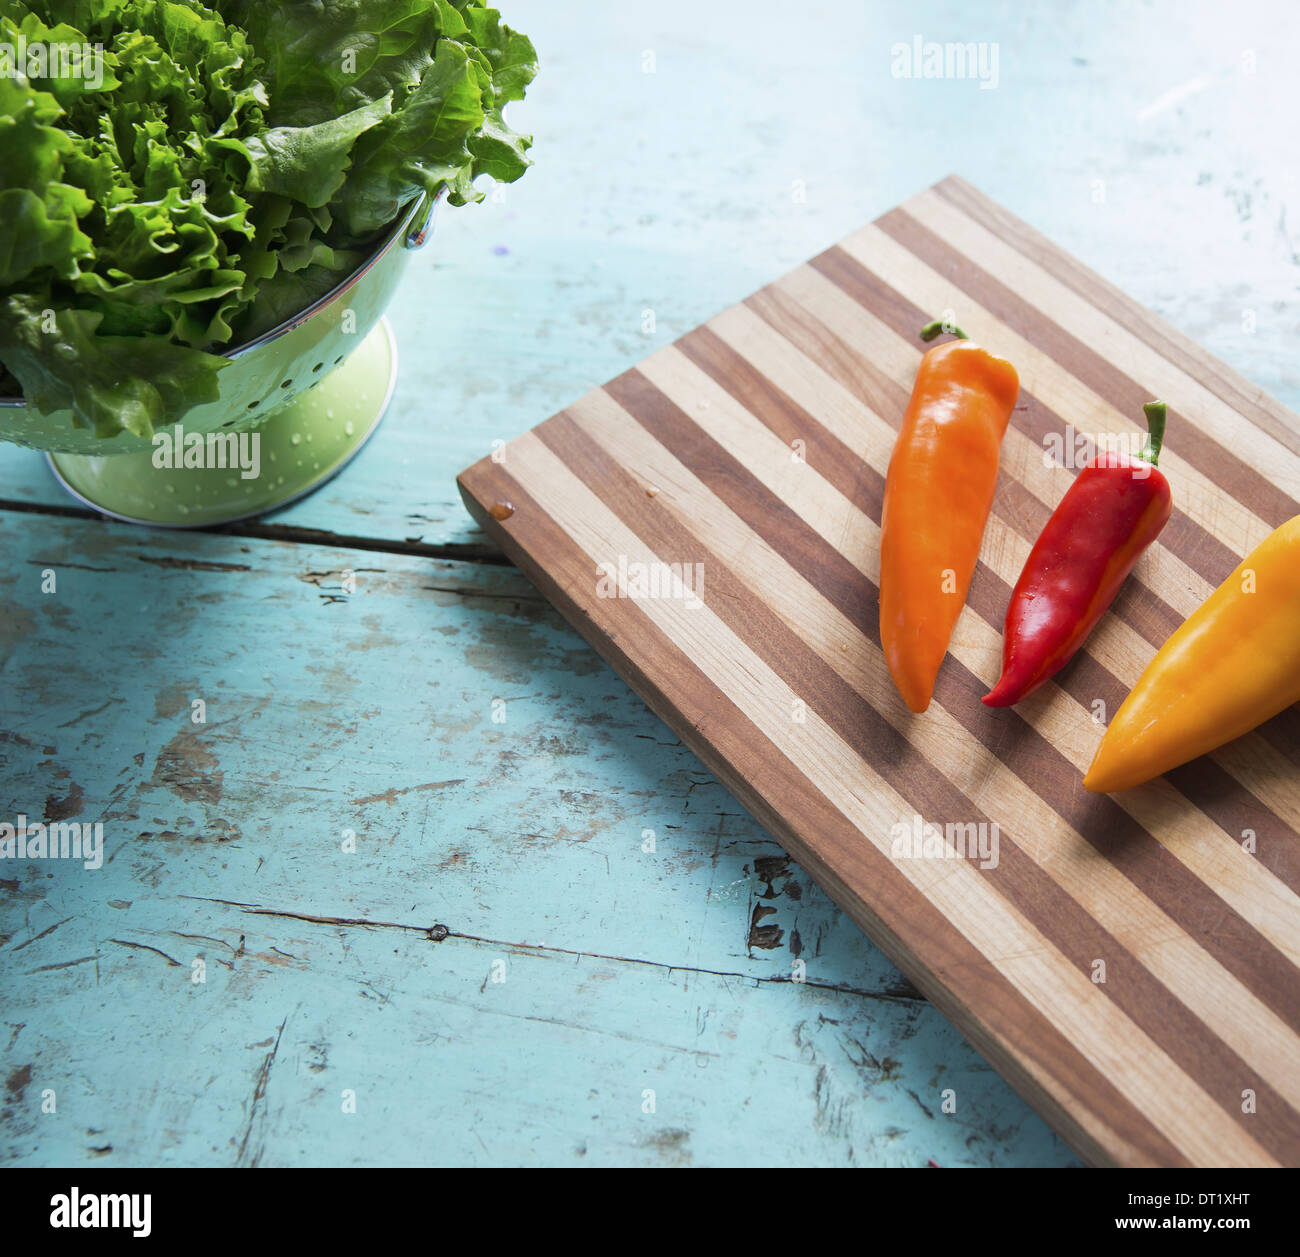 A tabletop with a wooden chopping board and three sweet peppers and a bowl of salad leaves Stock Photo